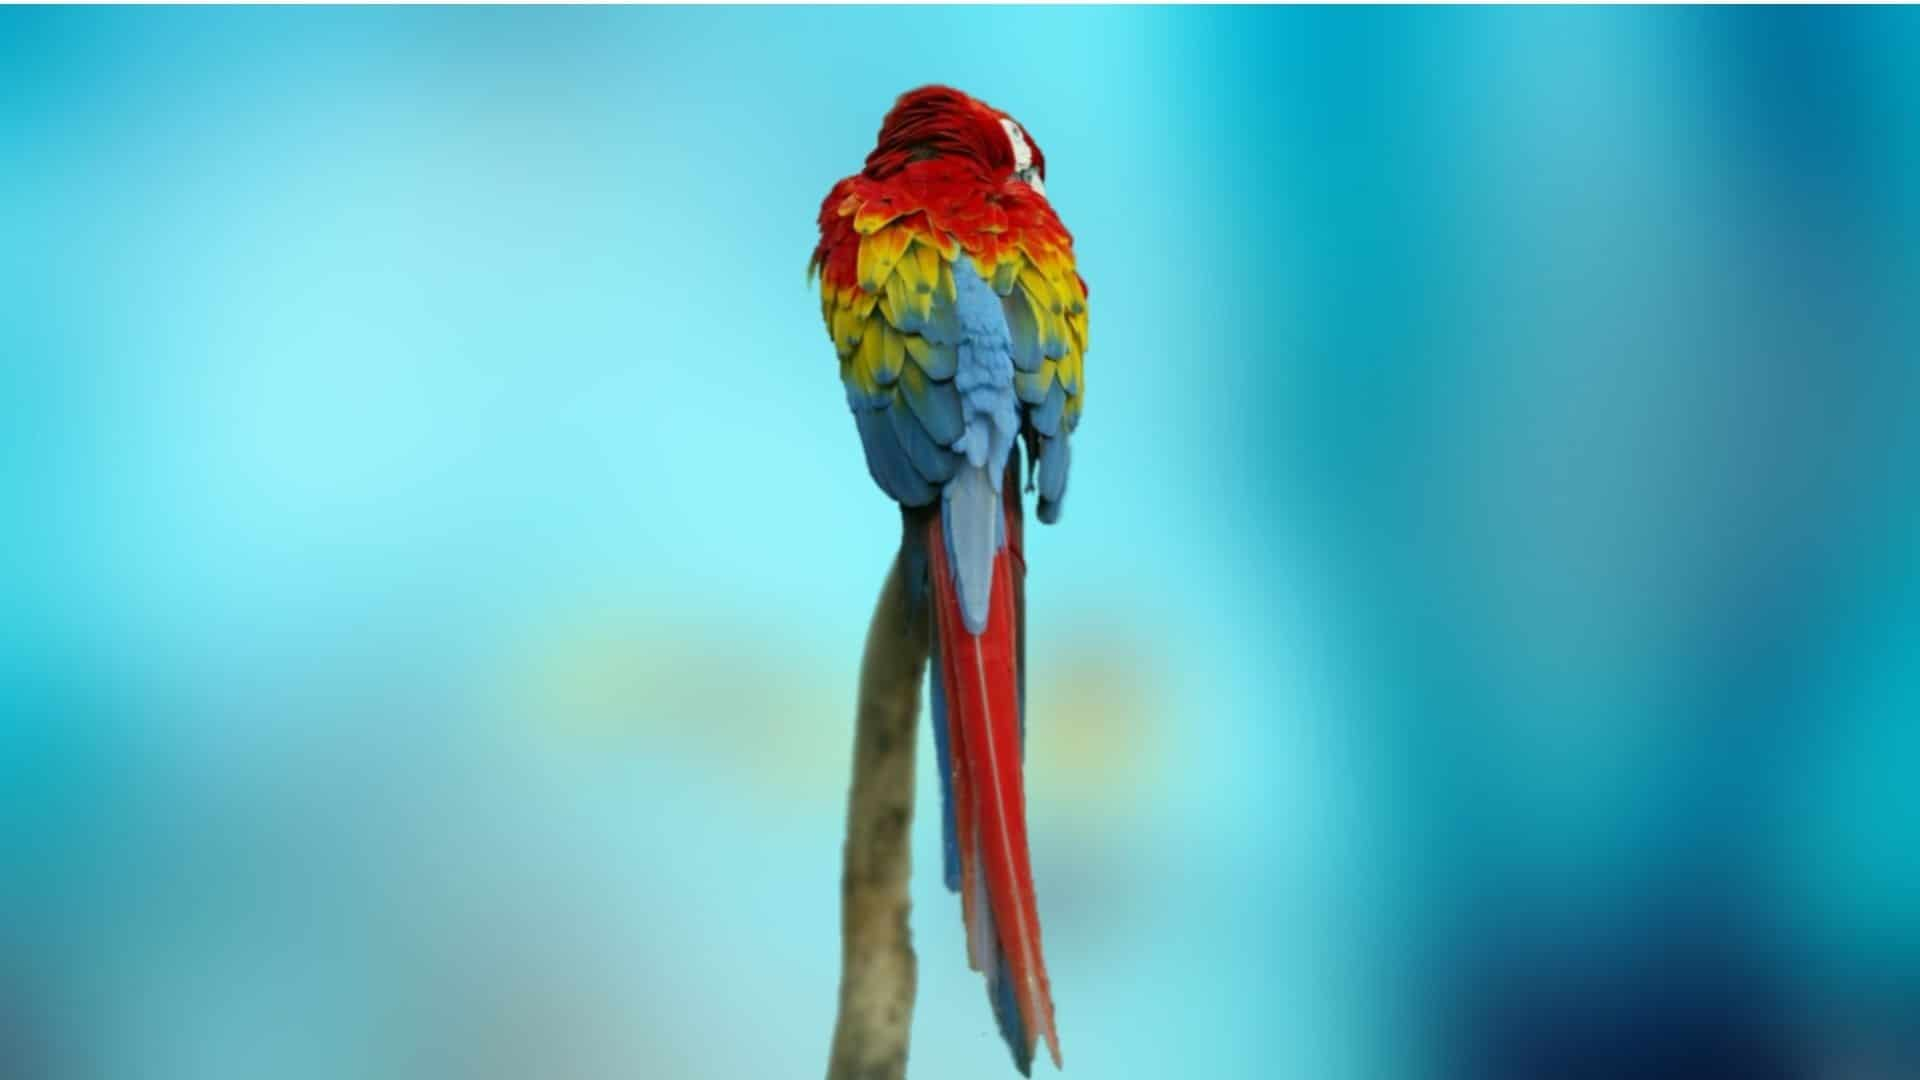 Parrot Os Wallpapers